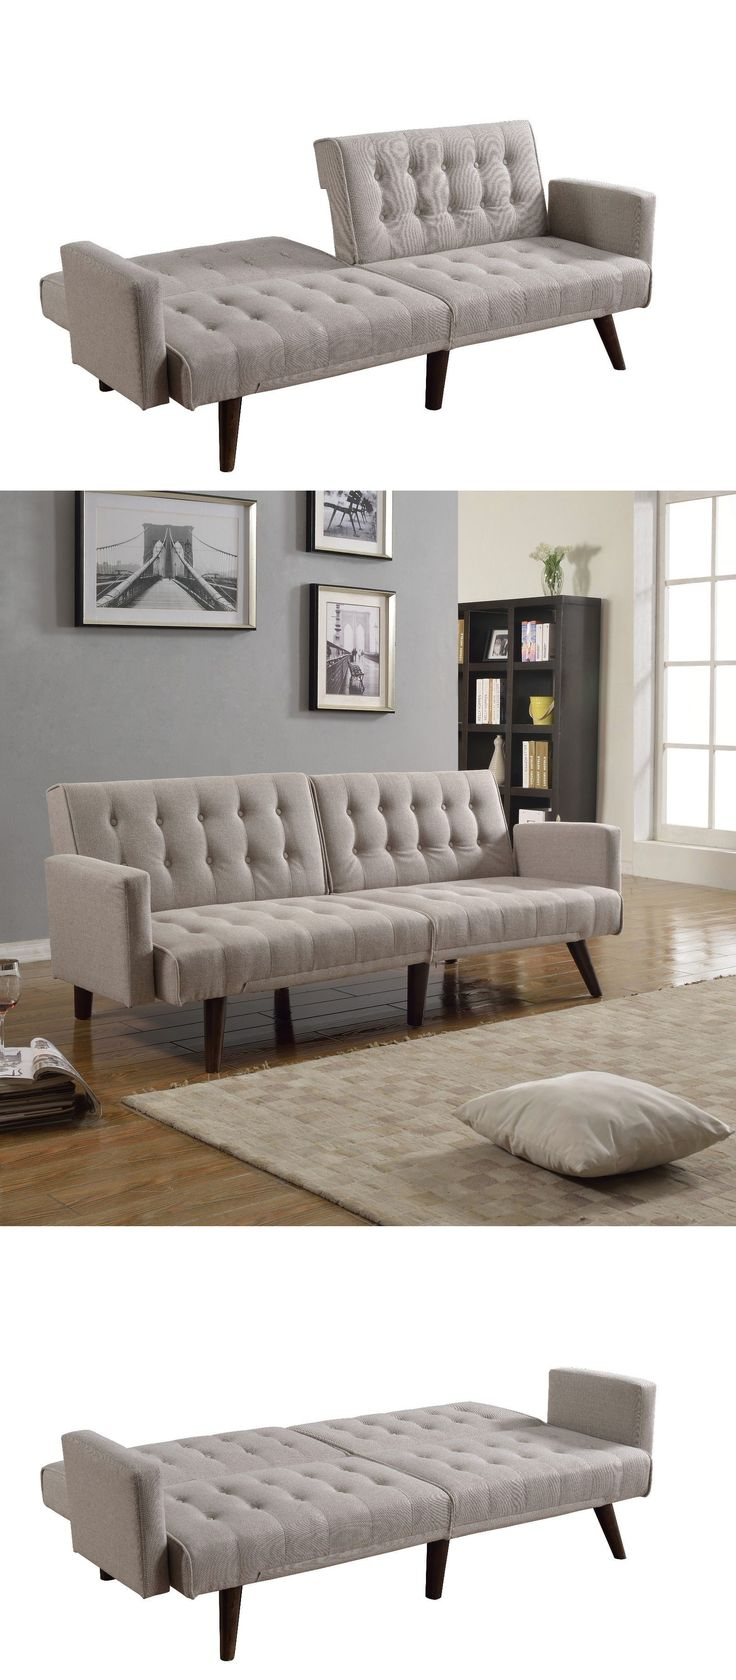 Futons Frames and Covers 131579: Modern Splitback Beige Linen Fabric Sleeper Futon Living Room Sofa -> BUY IT NOW ONLY: $179.99 on eBay!